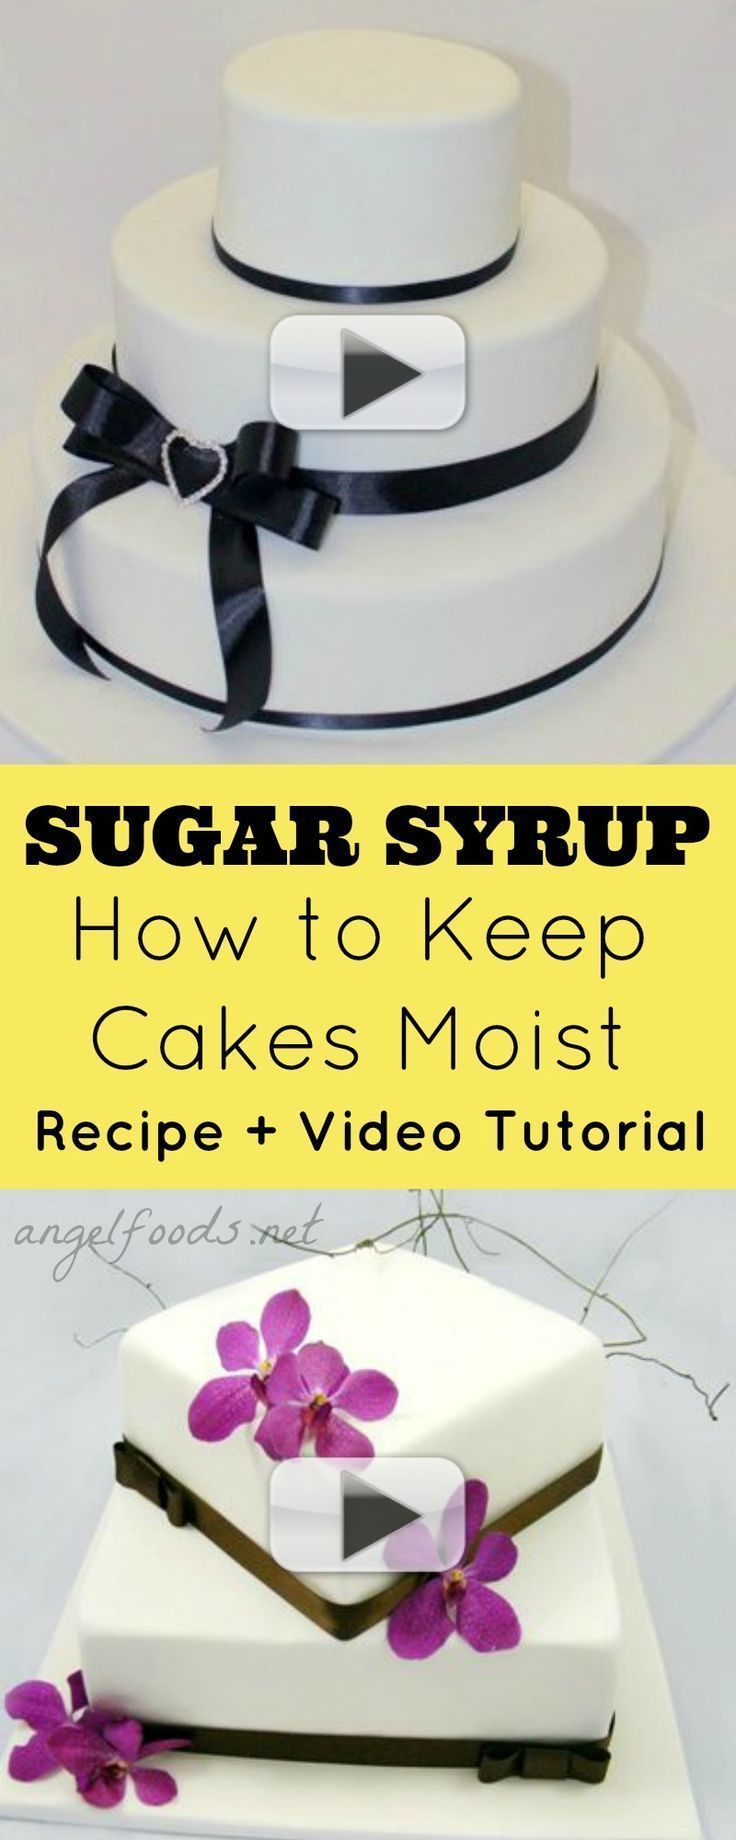 Sugar Syrup How To Keep Cakes Moist